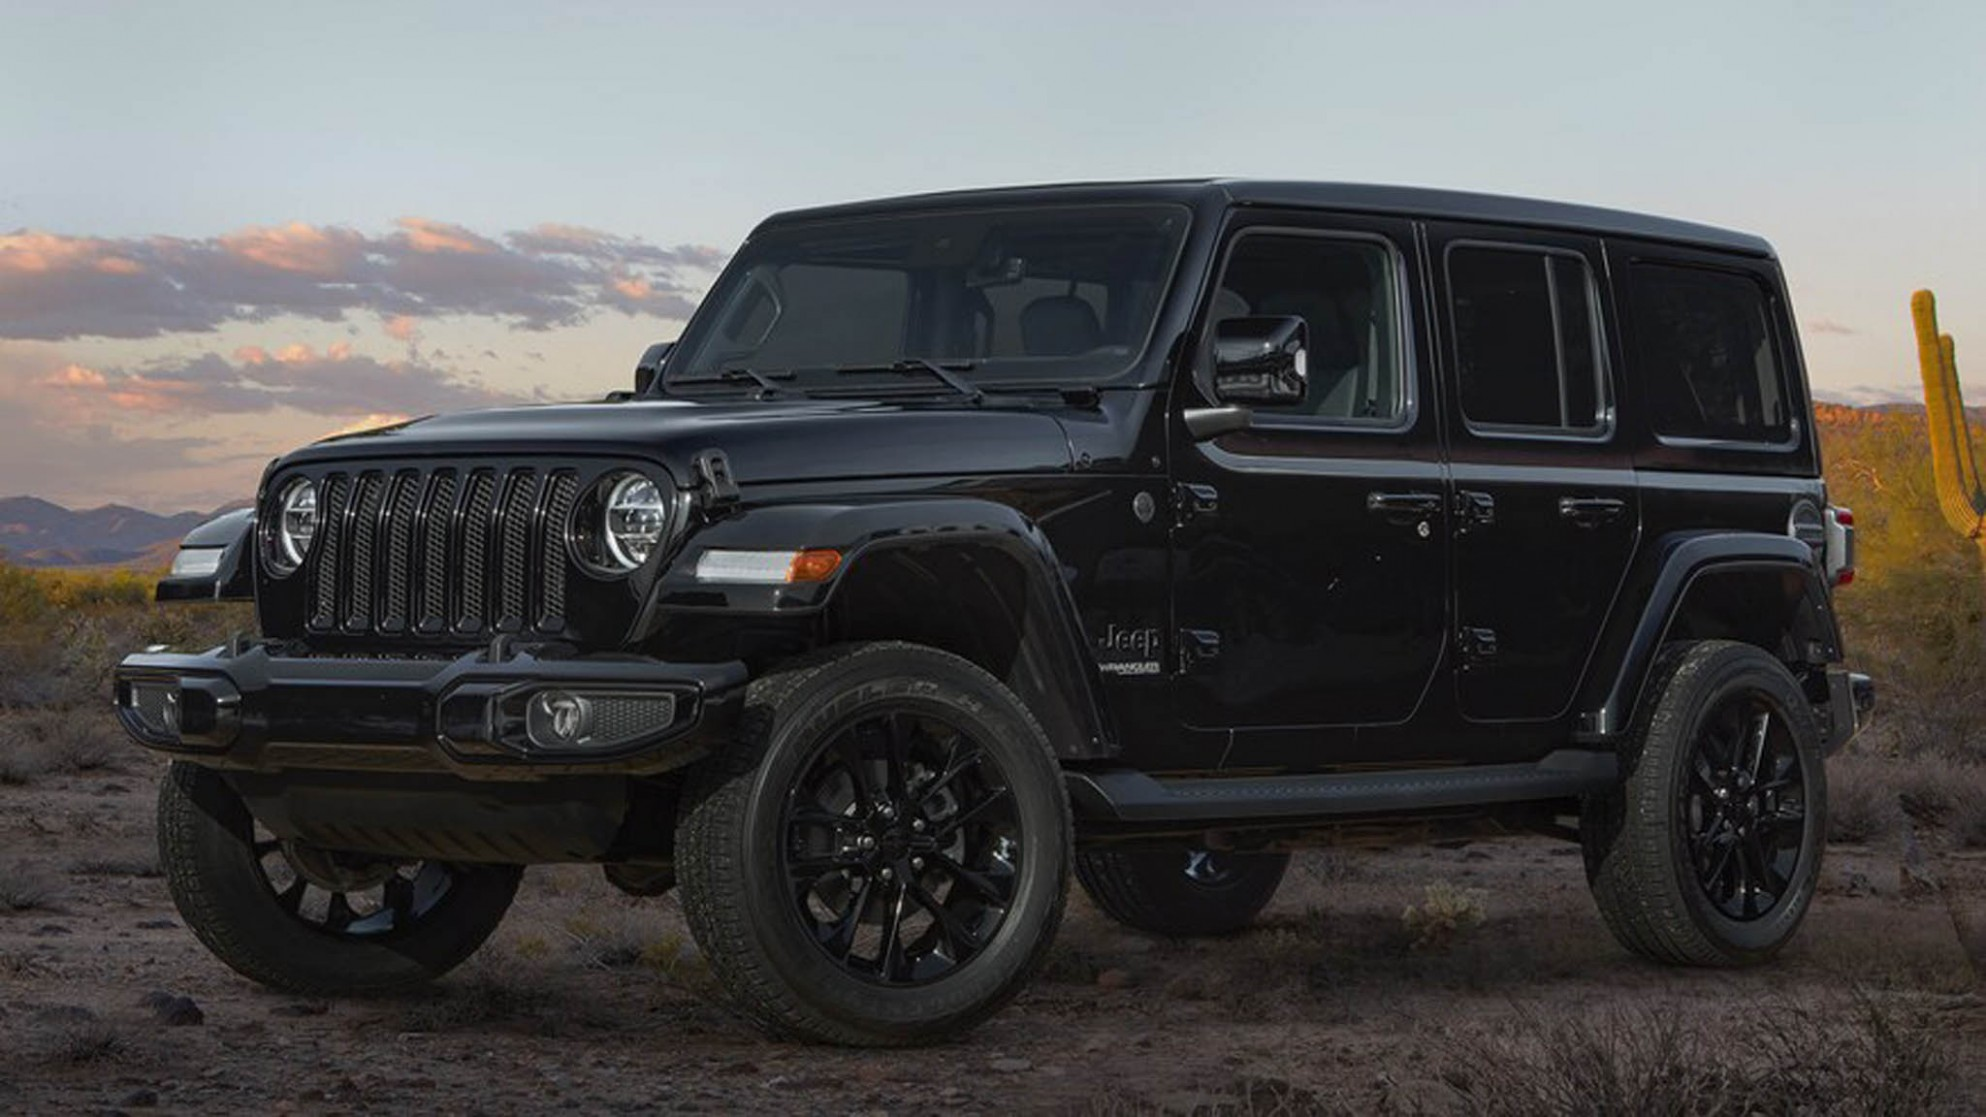 4 Jeep Wrangler Leaked Features Engines 4x4 - Jeep Jl 2021